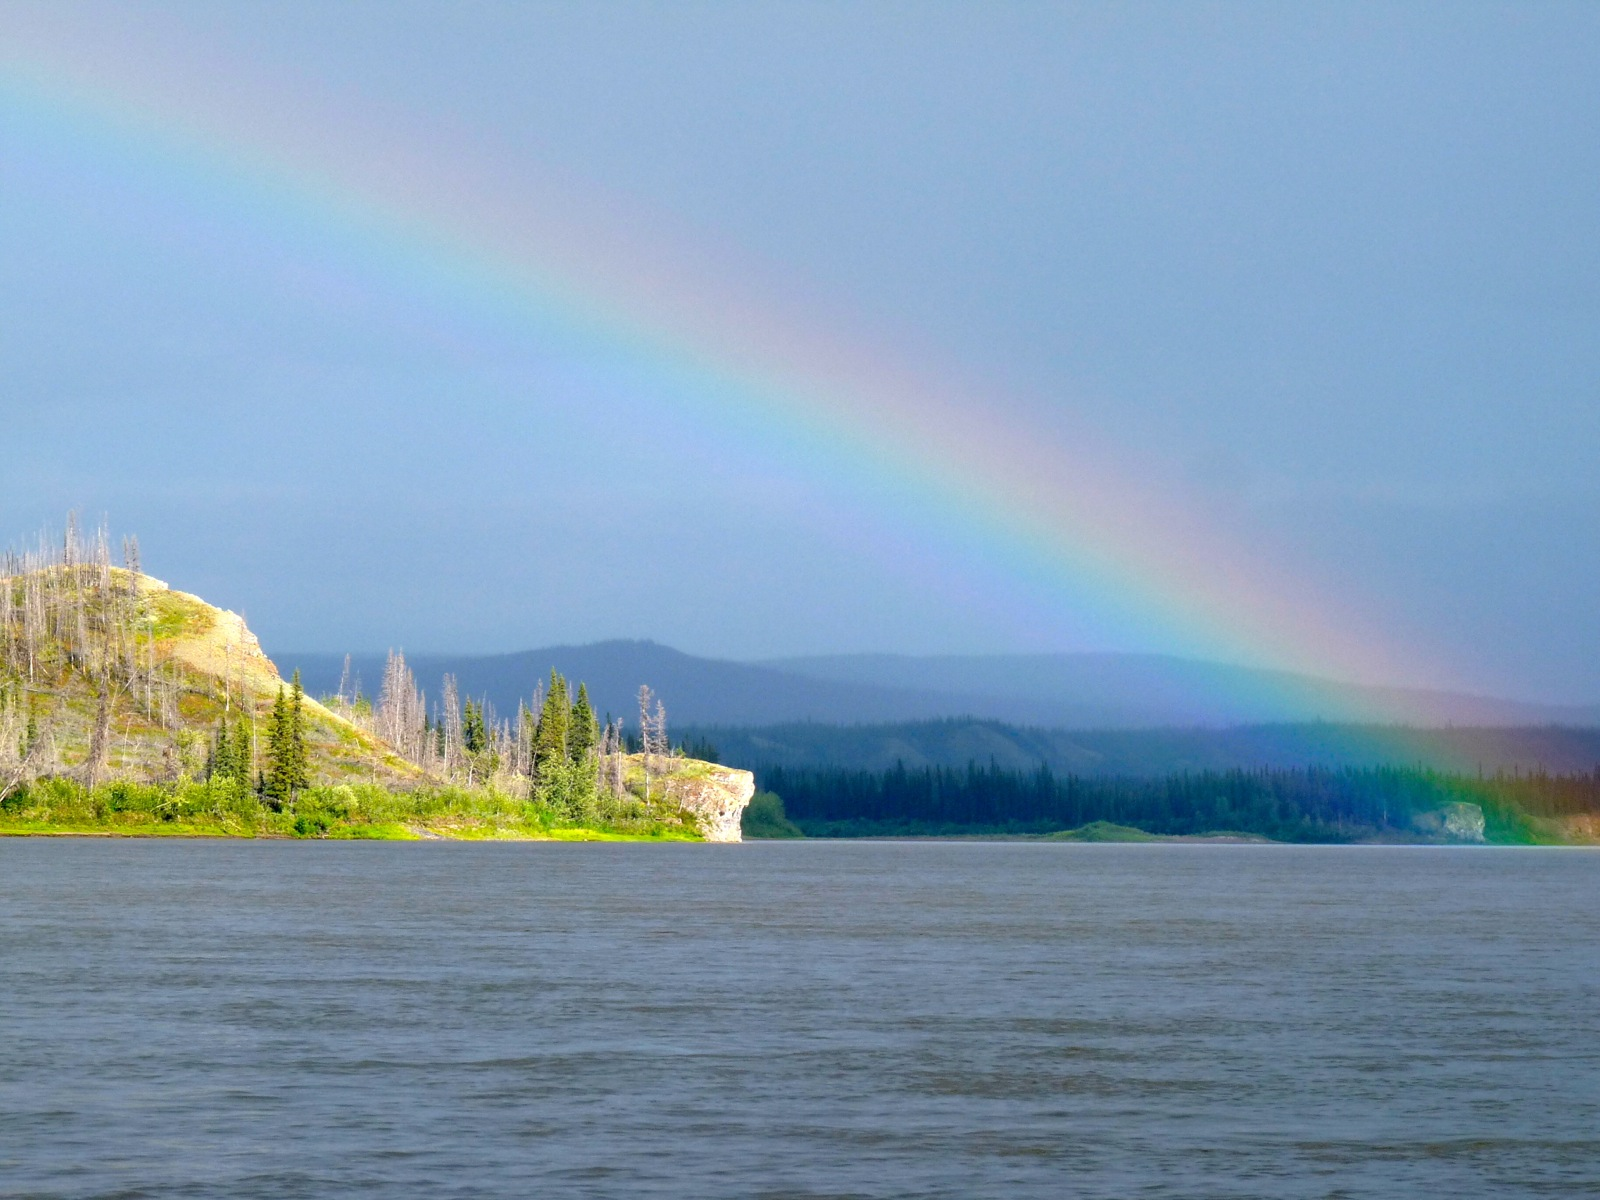 A large rainbow across the sky above the steel-grey water of the Porcupine River.